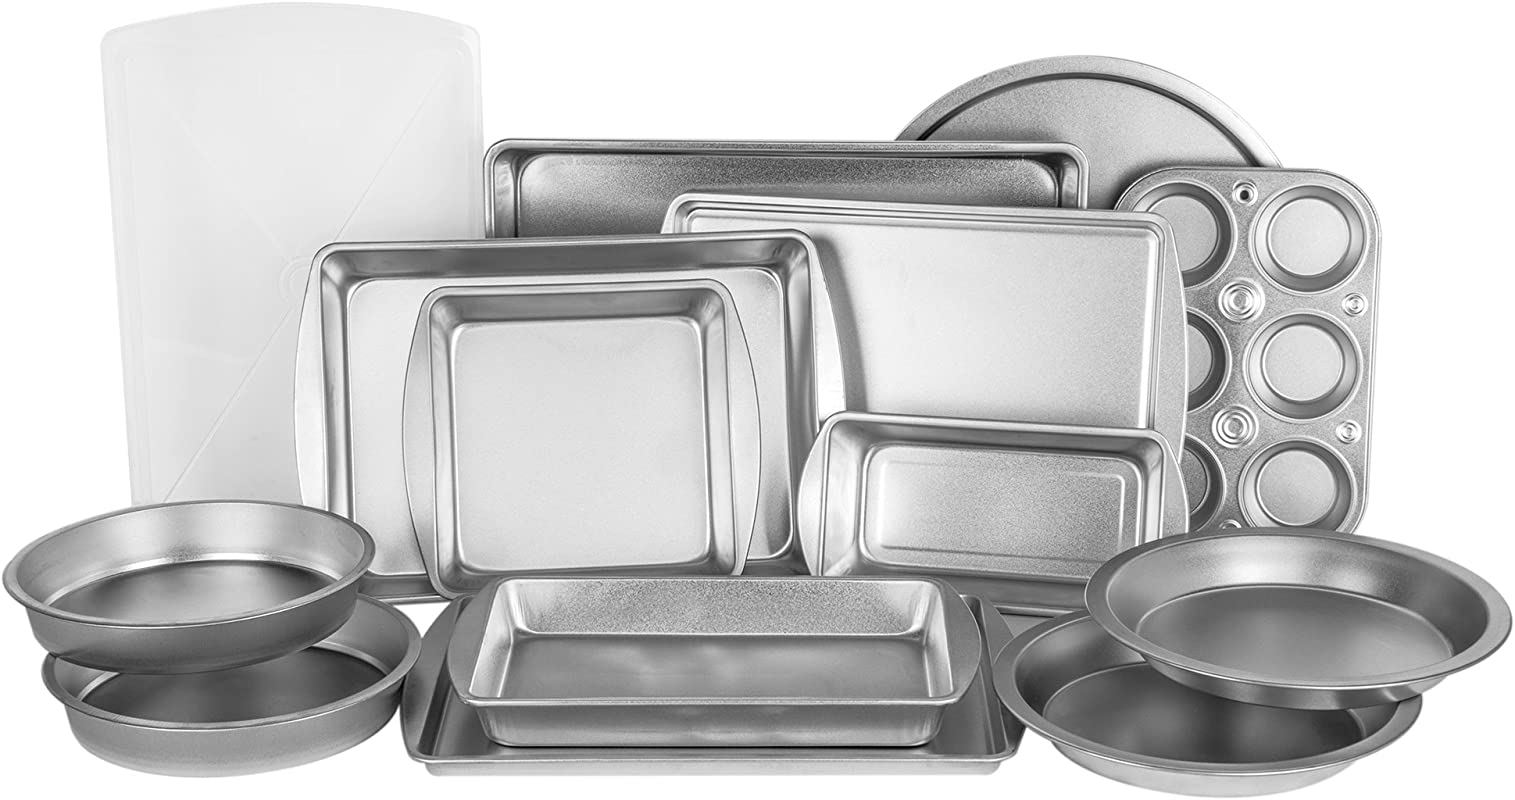 EZ Baker Uncoated Durable Steel Construction 14 Piece Bakeware Set American Made Natural Baking Surface That Heats Evenly For Perfect Baking Results Set Includes All Necessary Pans